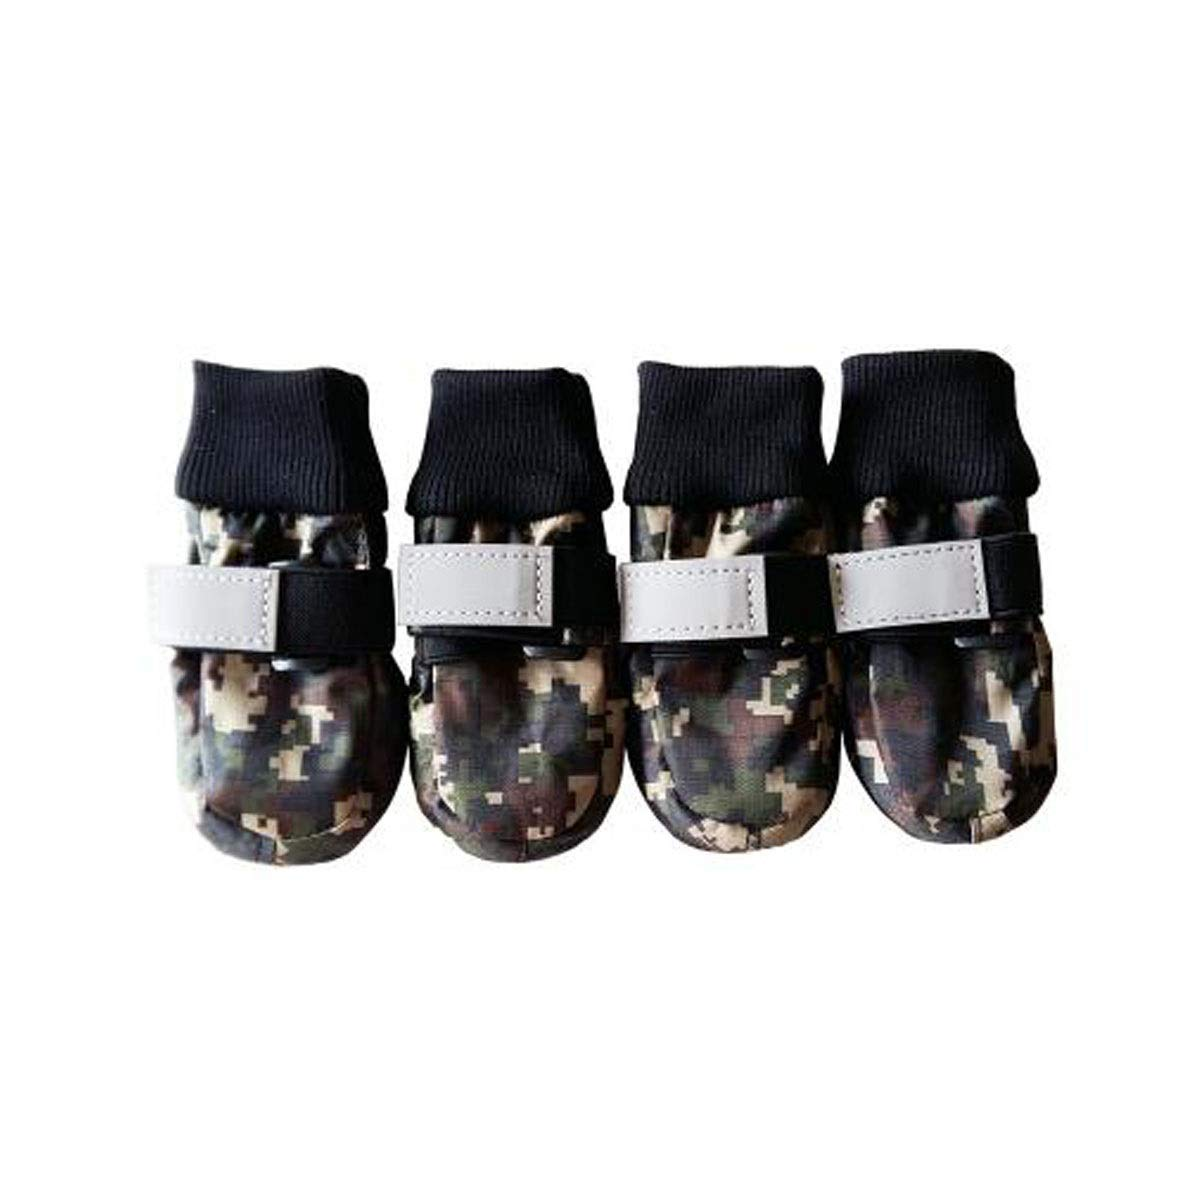 Multi-colord XXL Multi-colord XXL Dog shoes, Dog Rain Boots, Large Dog Waterproof Non-Slip shoes, Dog Outdoor Walking shoes, Pet Supplies, bluee, Variegated (S-XXL) (color   Multi-colord, Size   XXL)